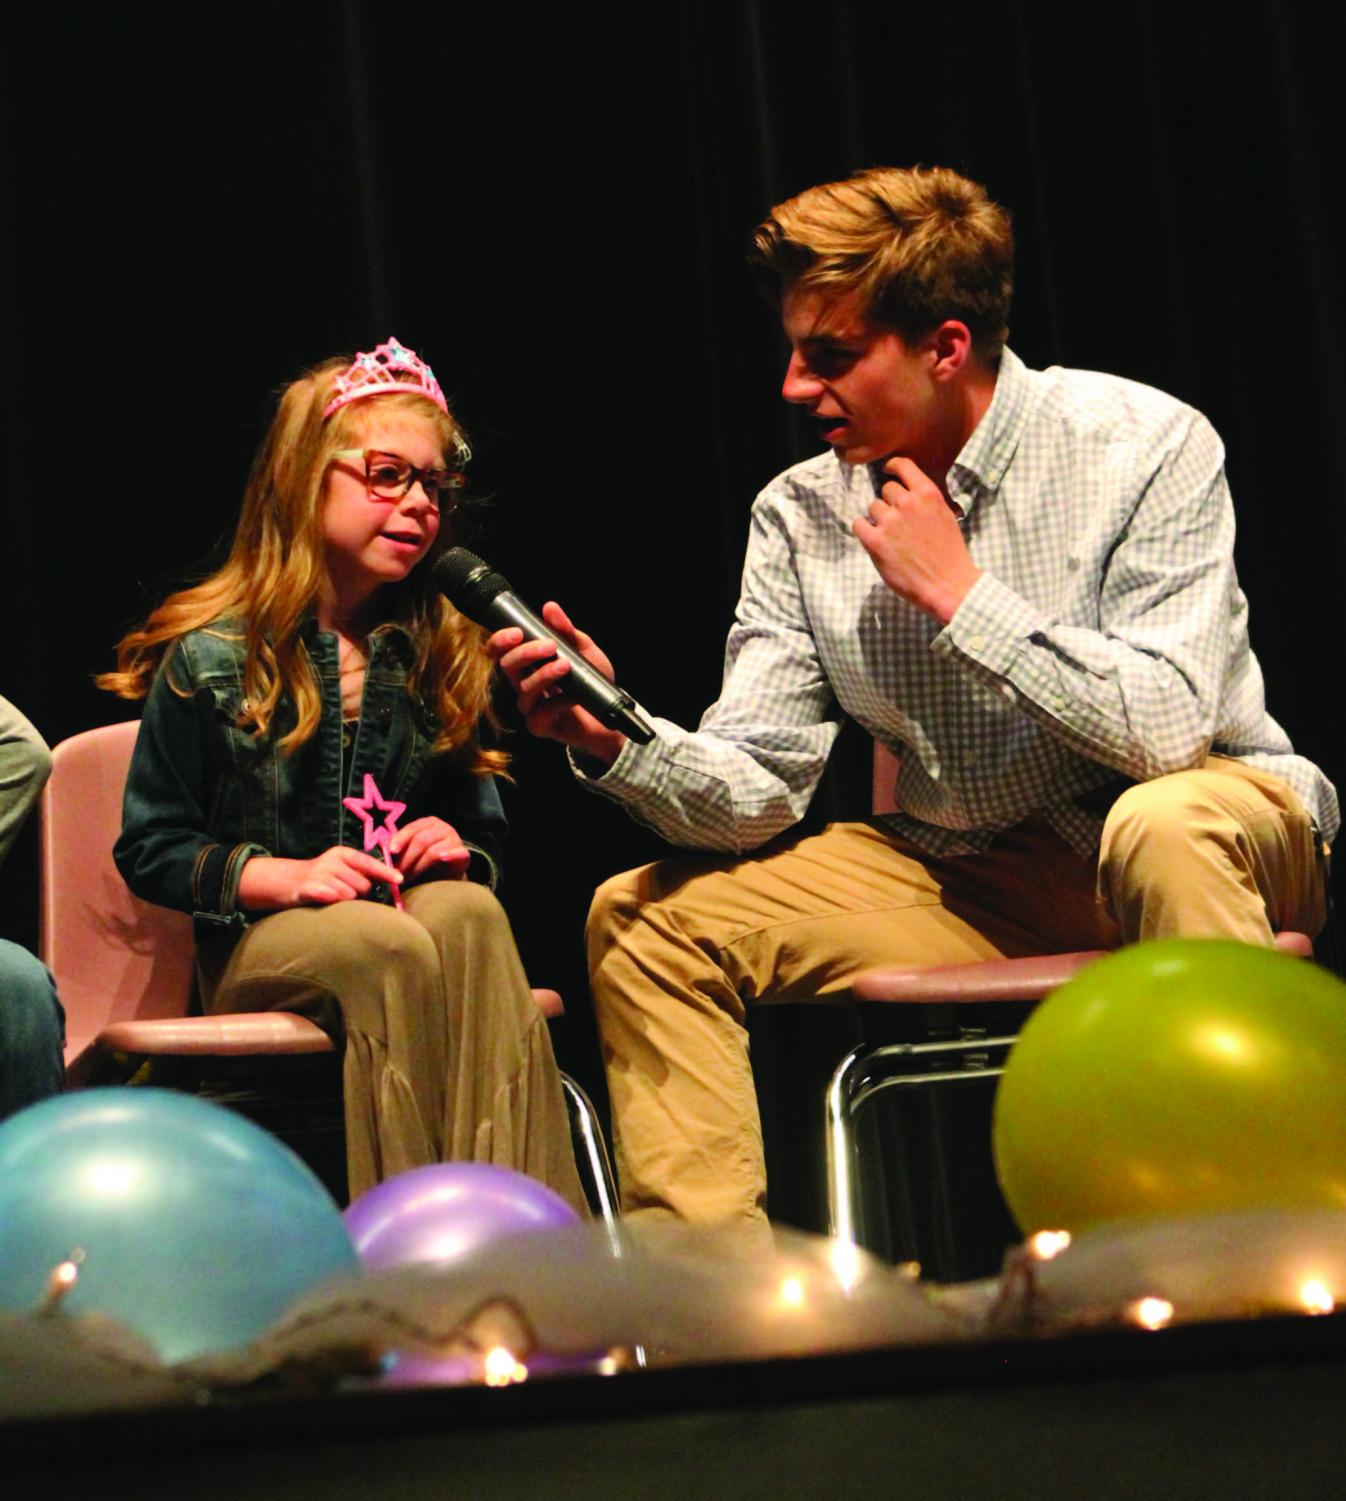 Sophomore Mitchell Meier asks Kelsie questions during the Wish Week assembly. MHS raised $3,013 dollars for her wish.